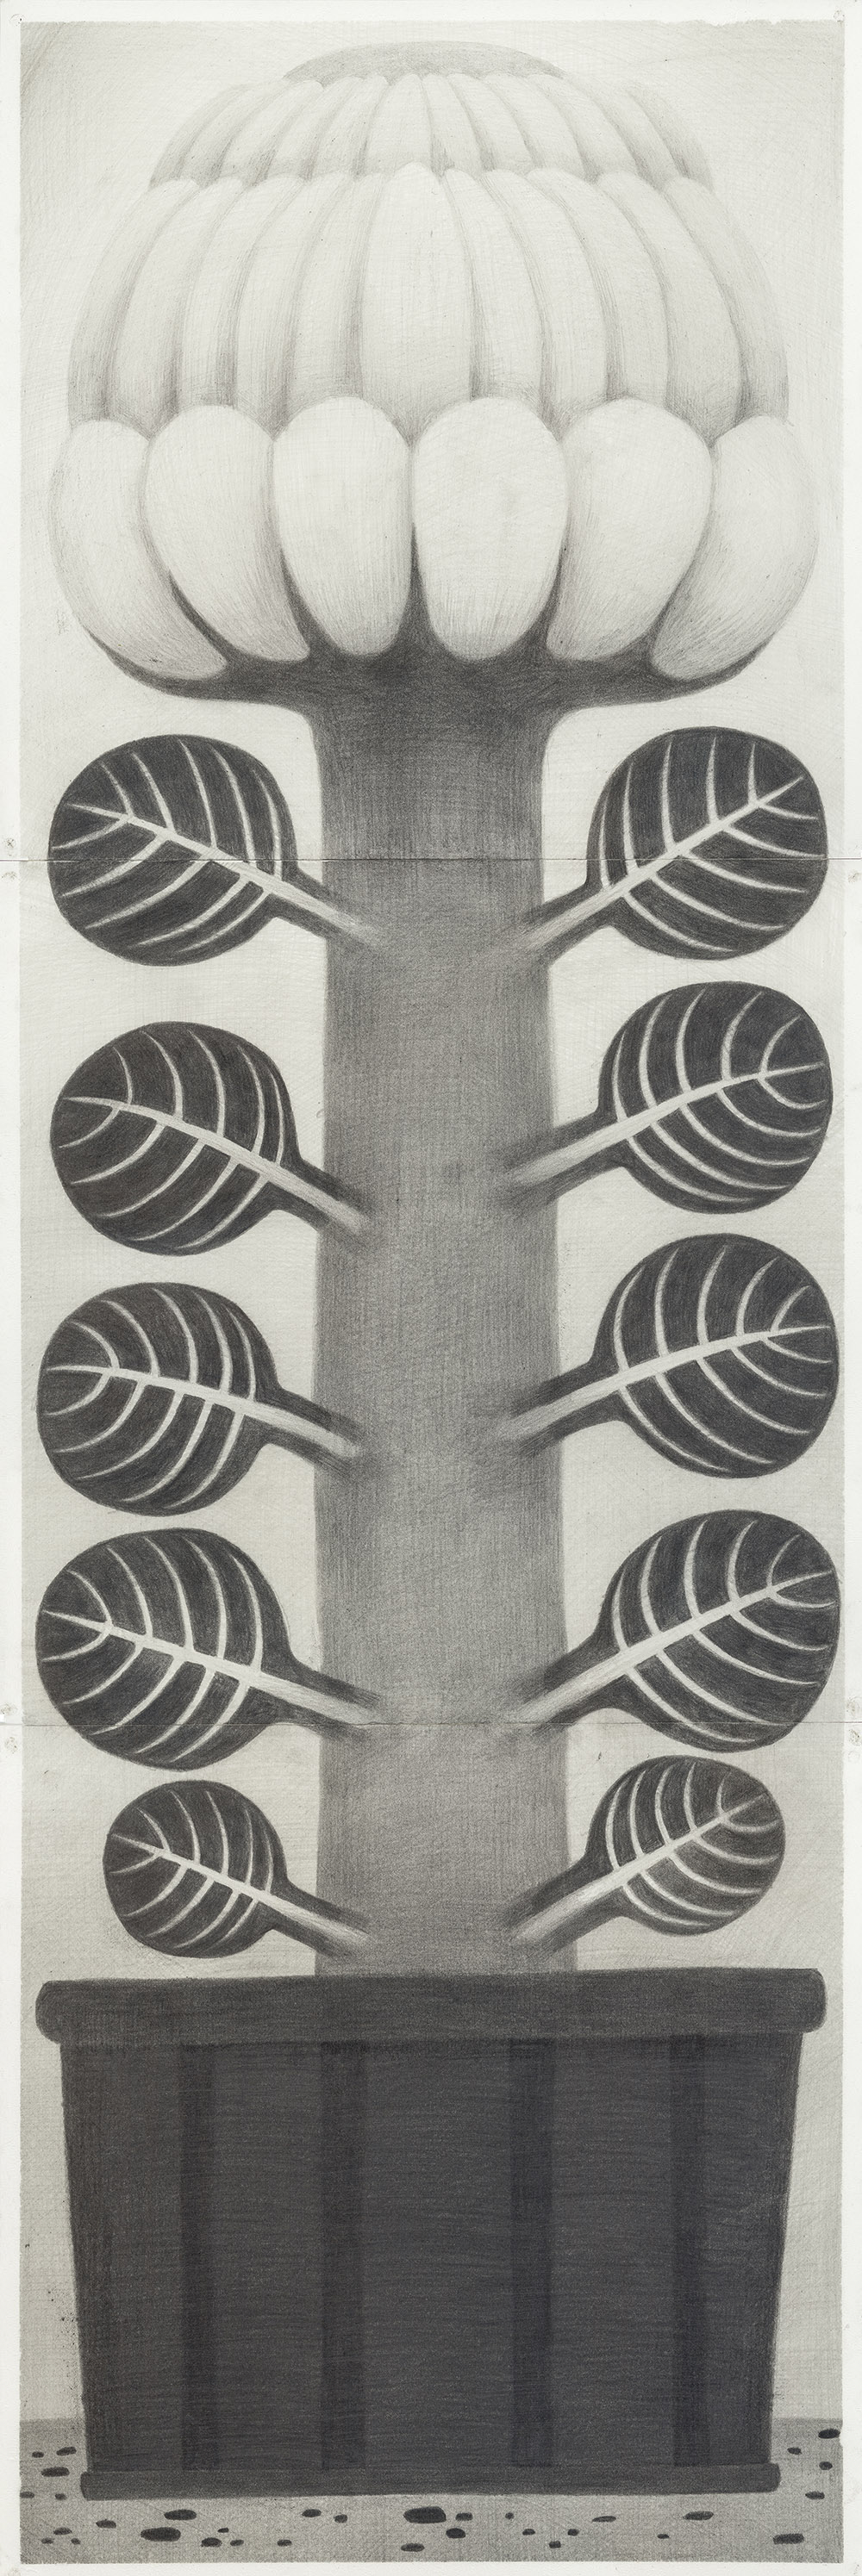 [20ds1123] Drawing_pencil on paper_90×30_2020.jpg